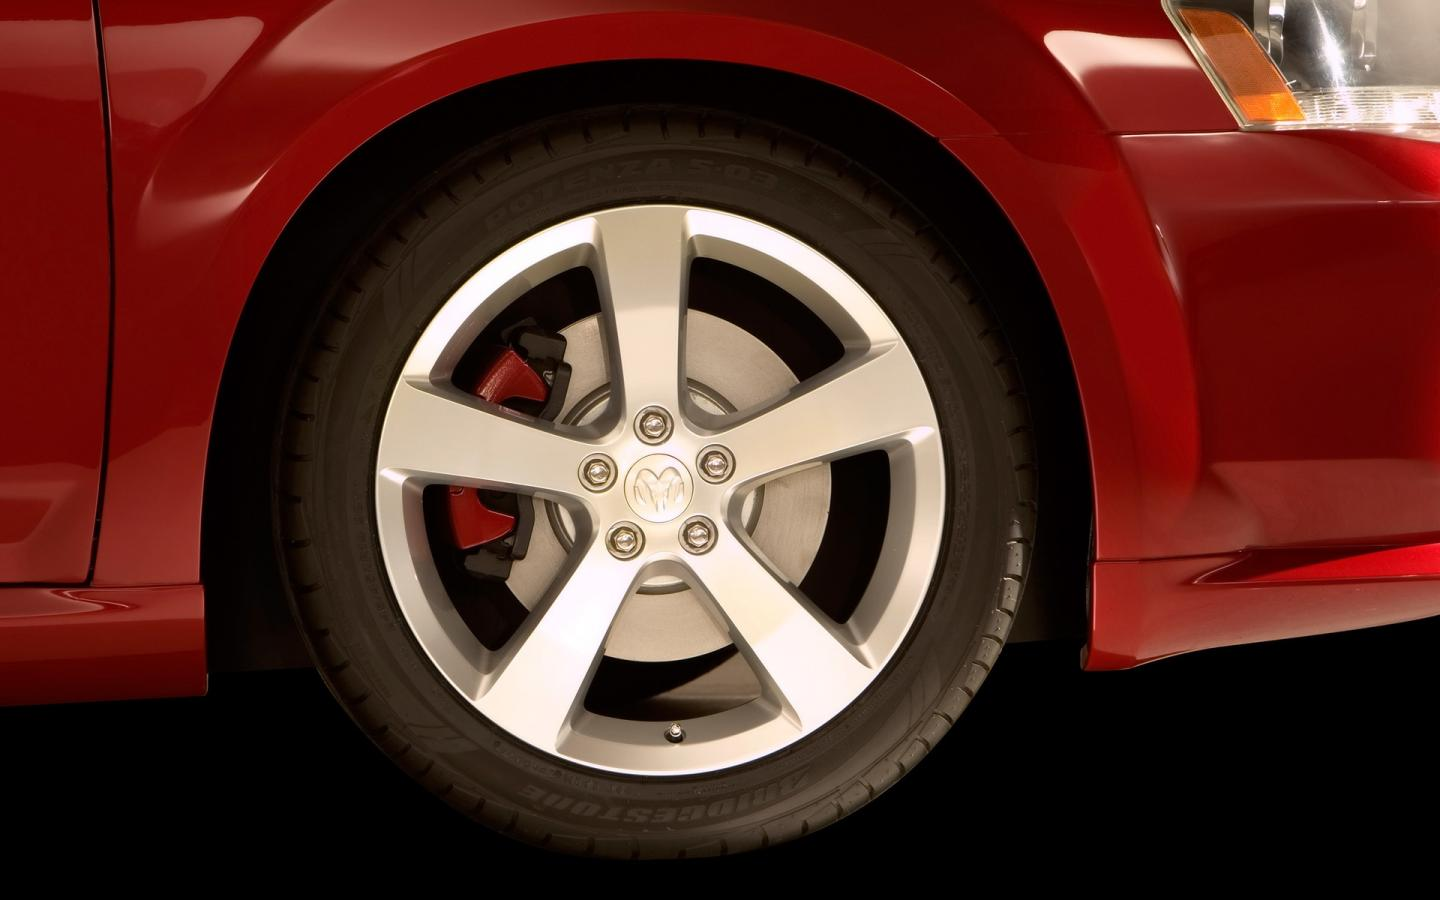 2006 Dodge Avenger Concept Wheel 1440x900